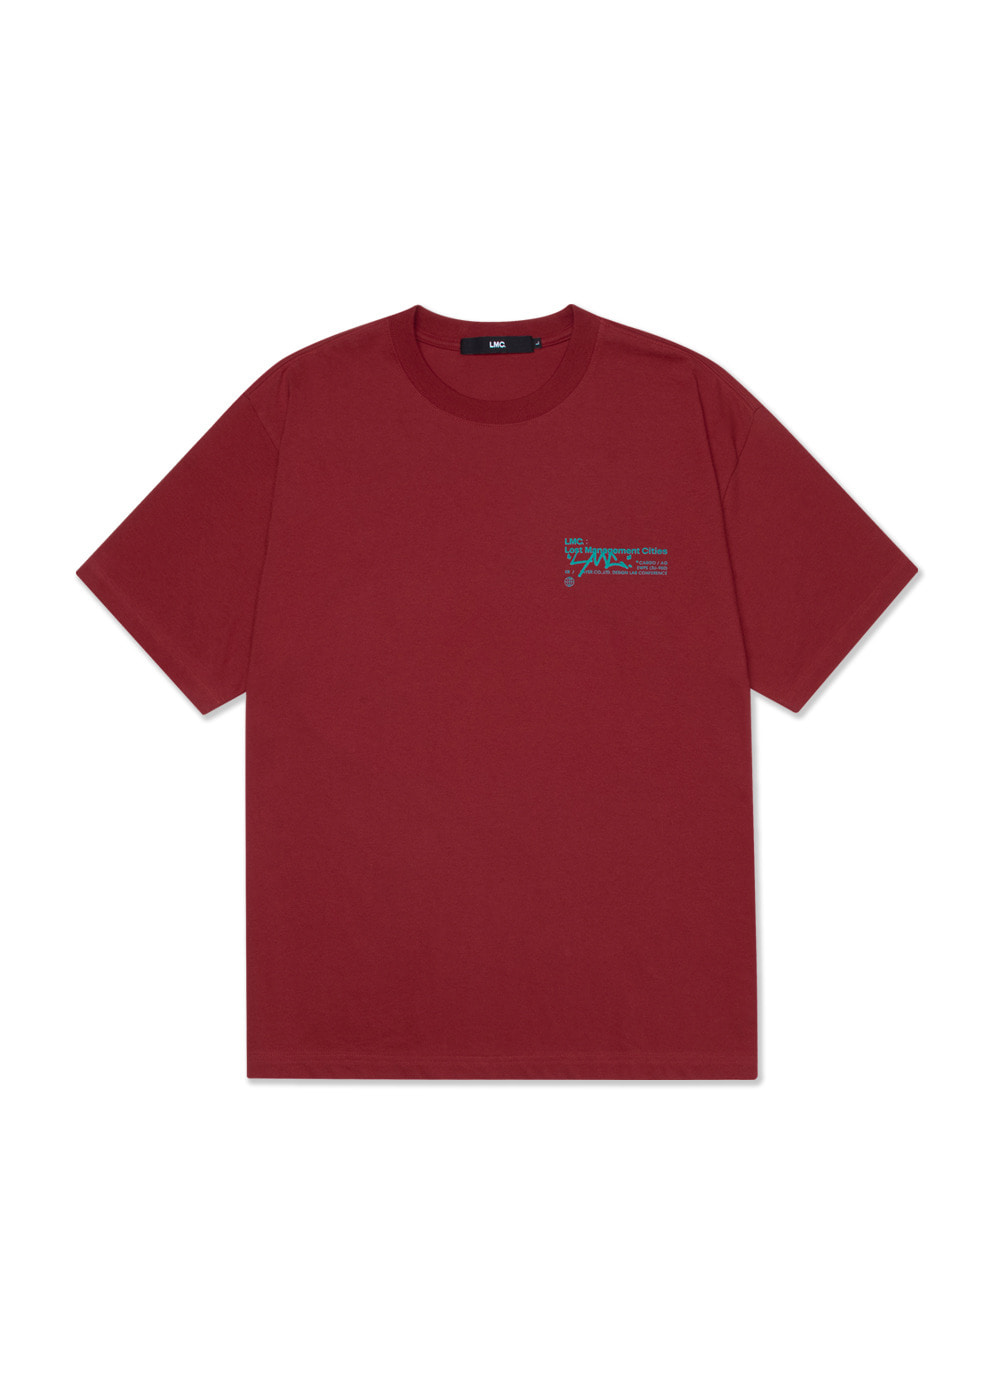 LMC SIGNATURE TEE brick red